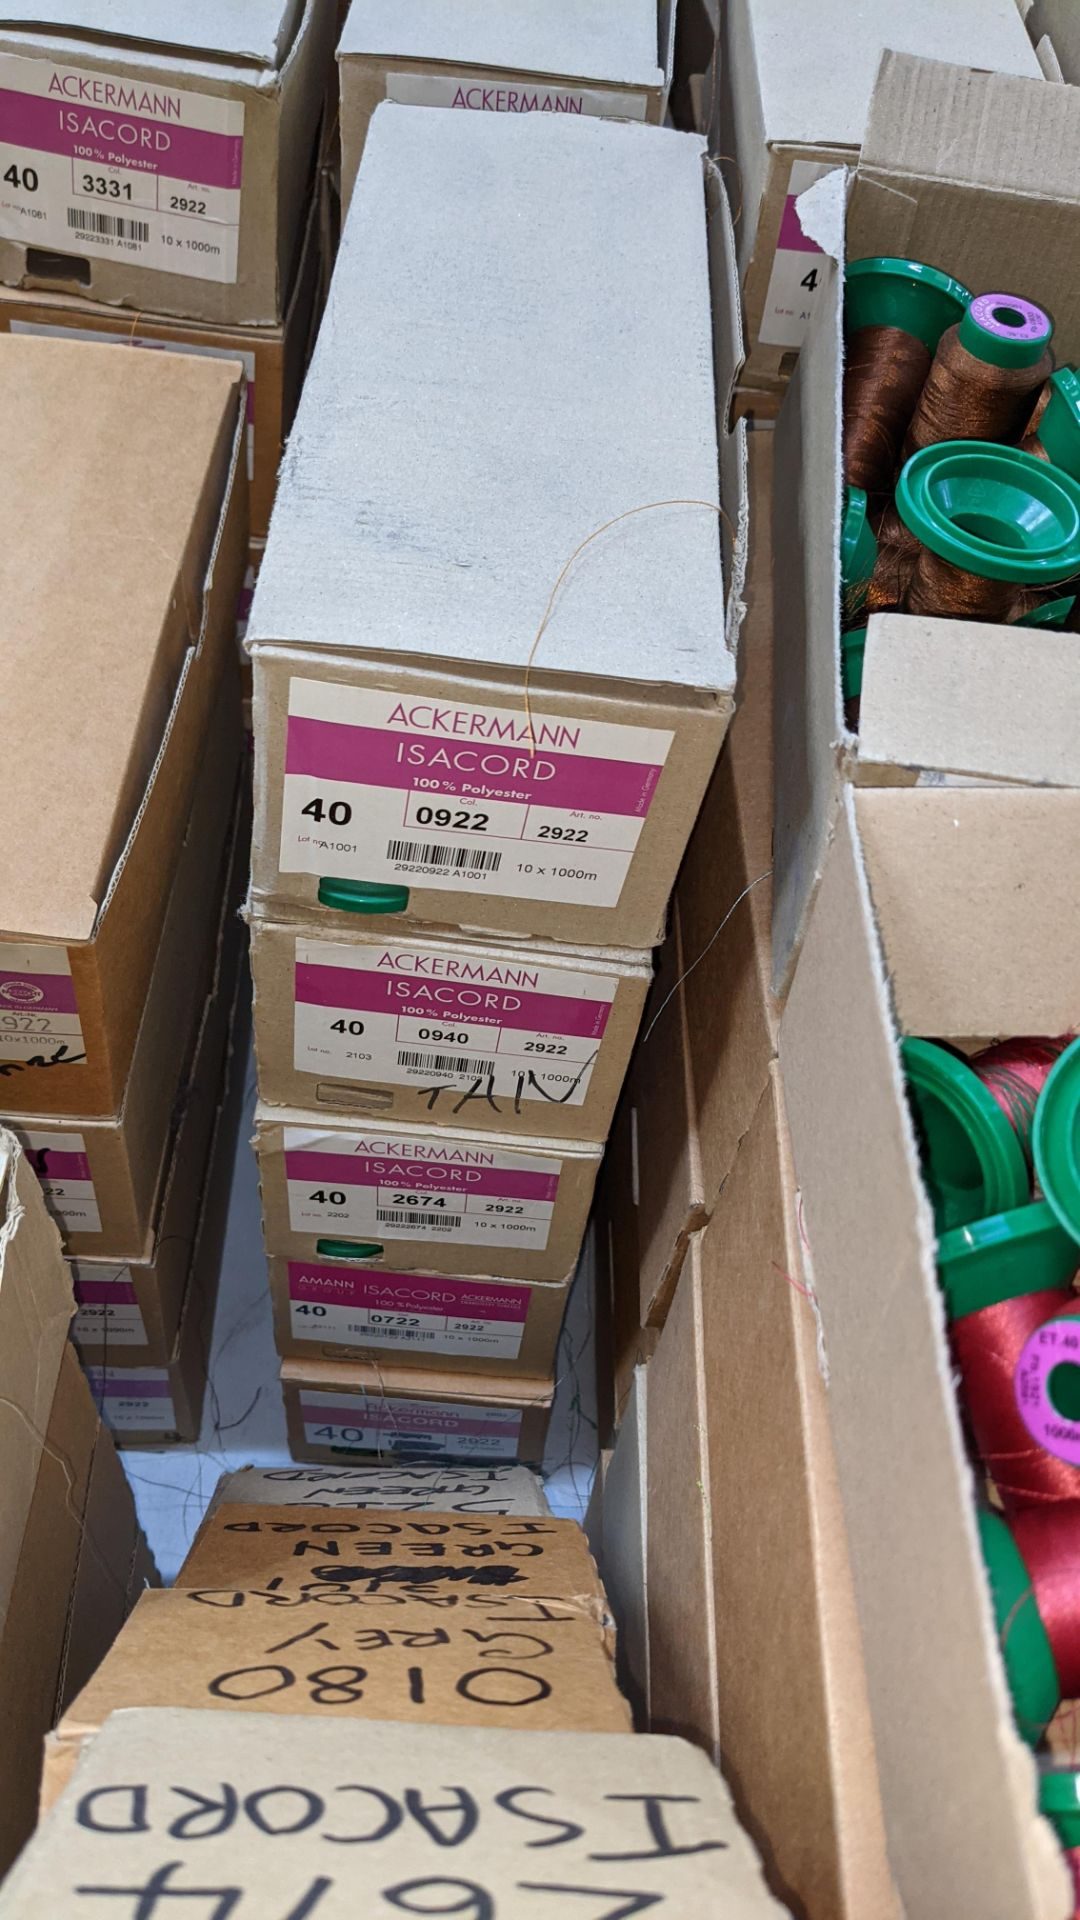 20 boxes of Ackermann Isacord (40) polyester thread - Image 4 of 9